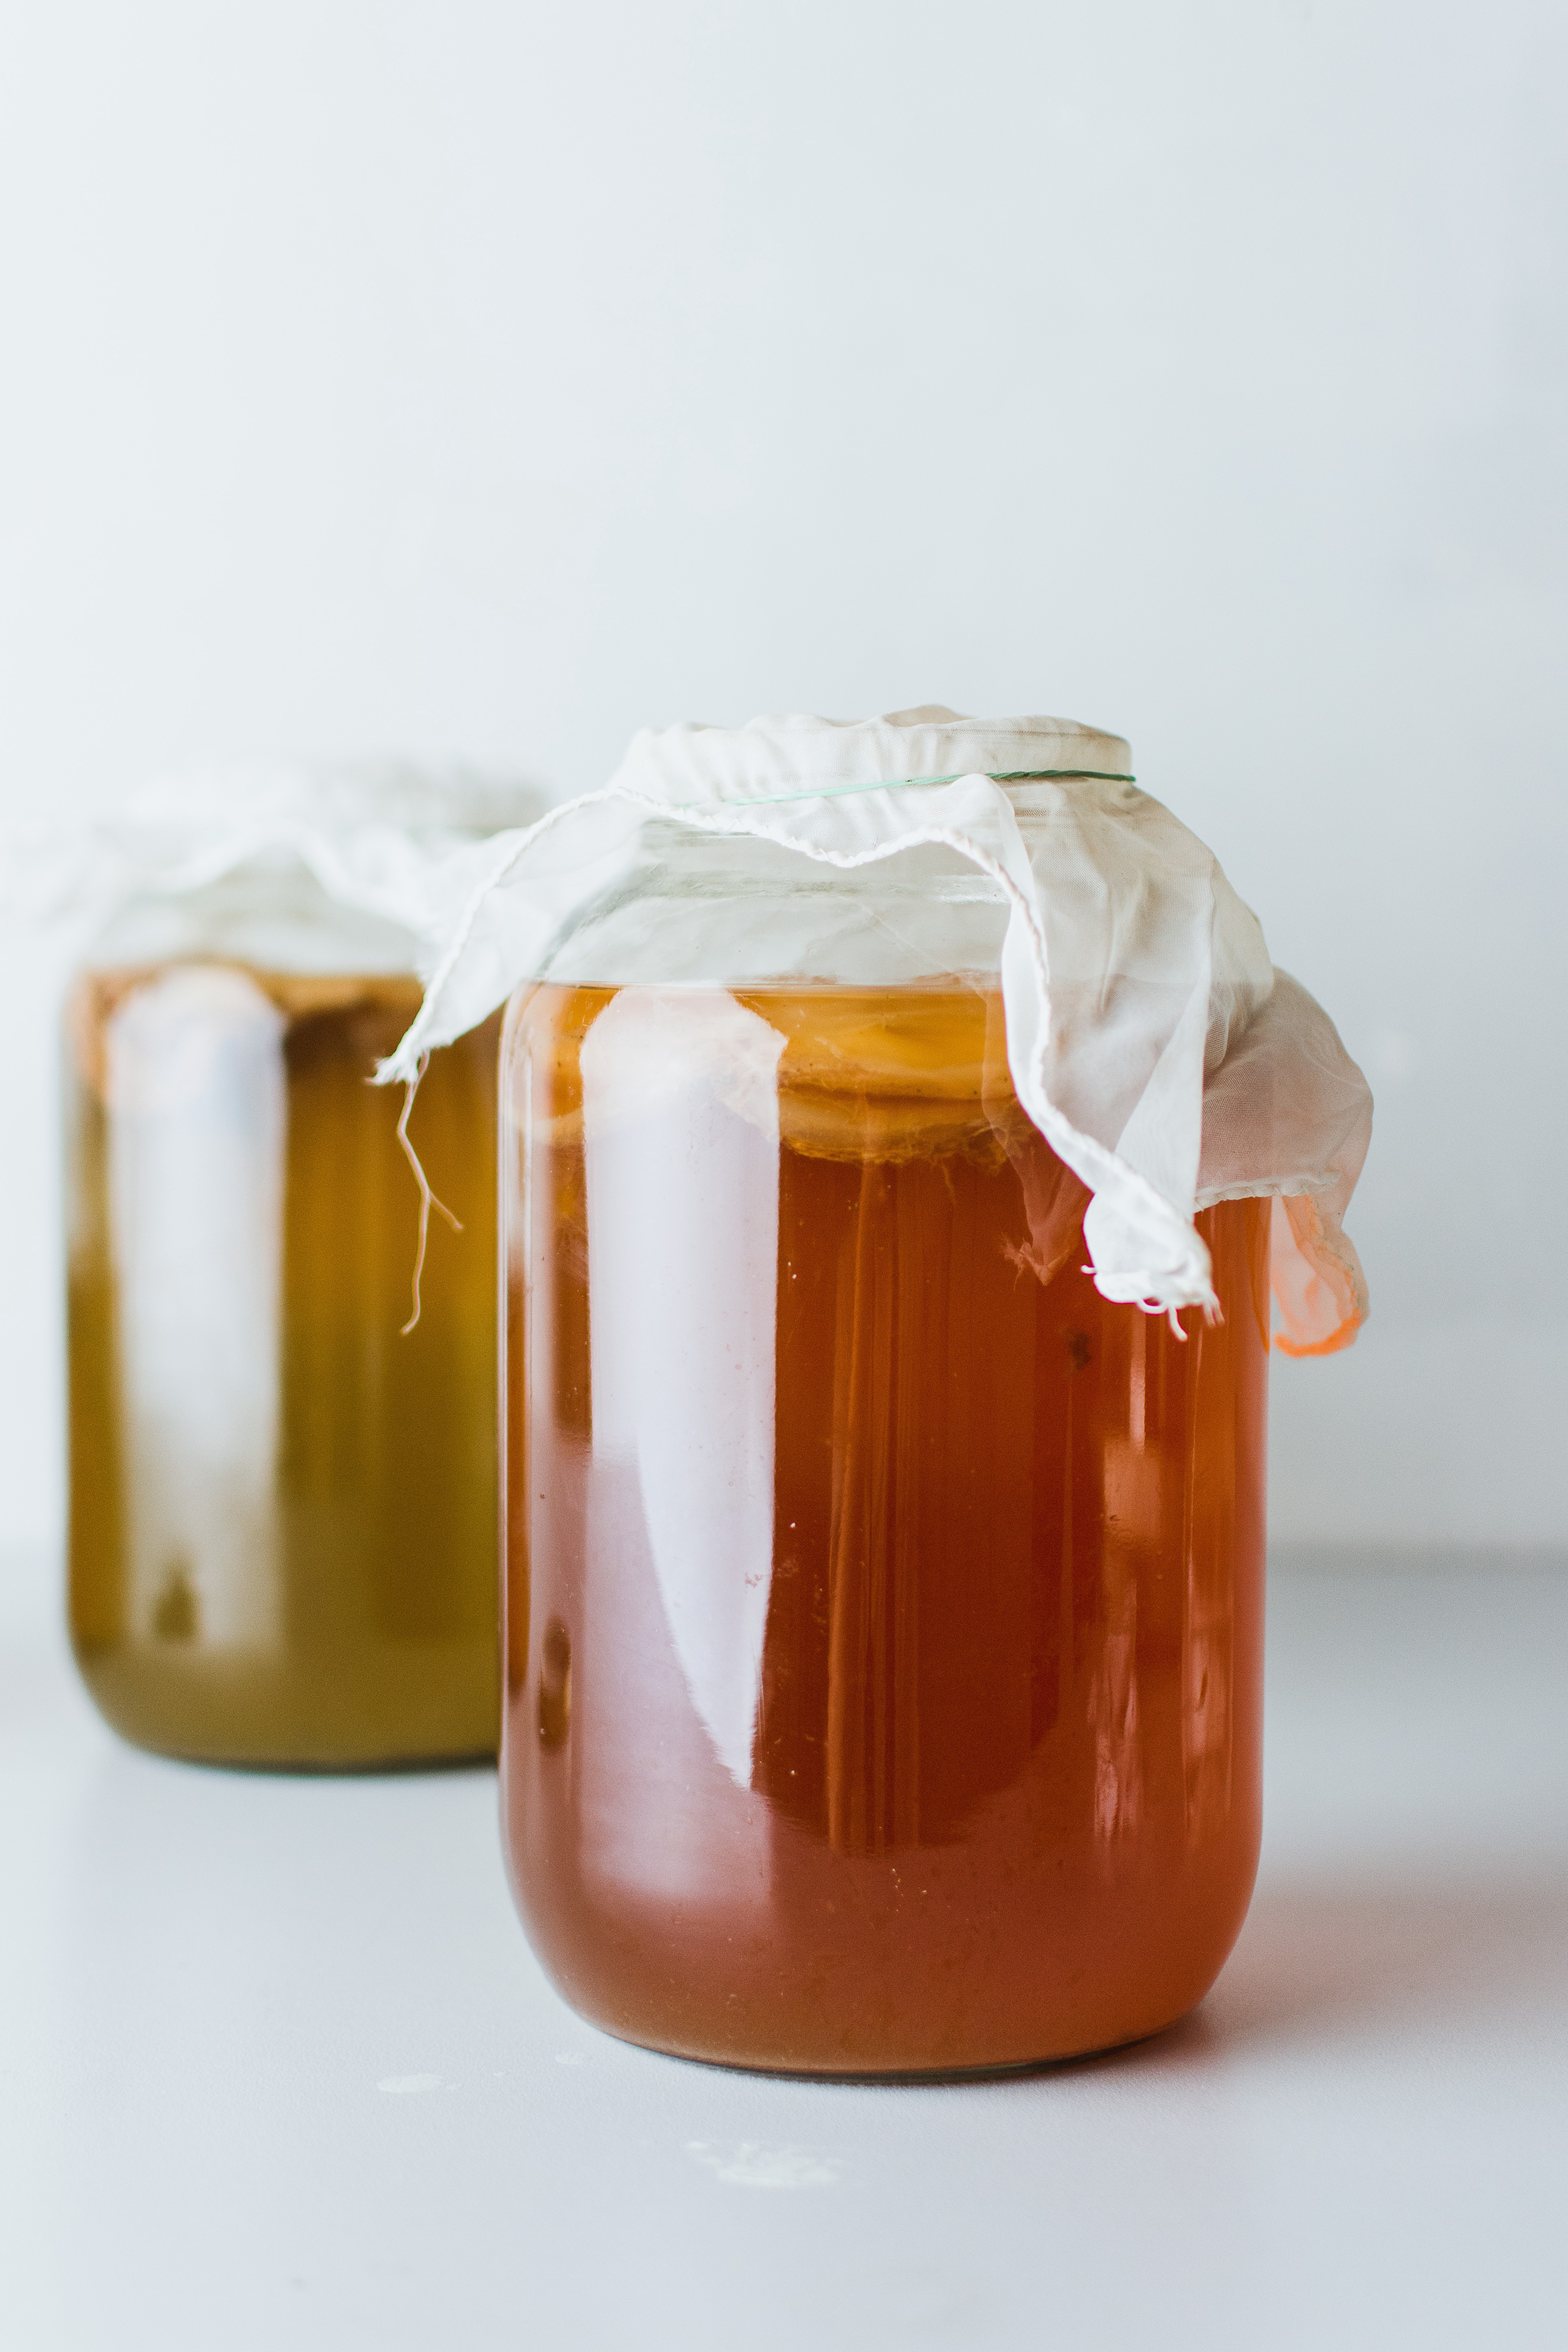 Two glass jars of fermented tea